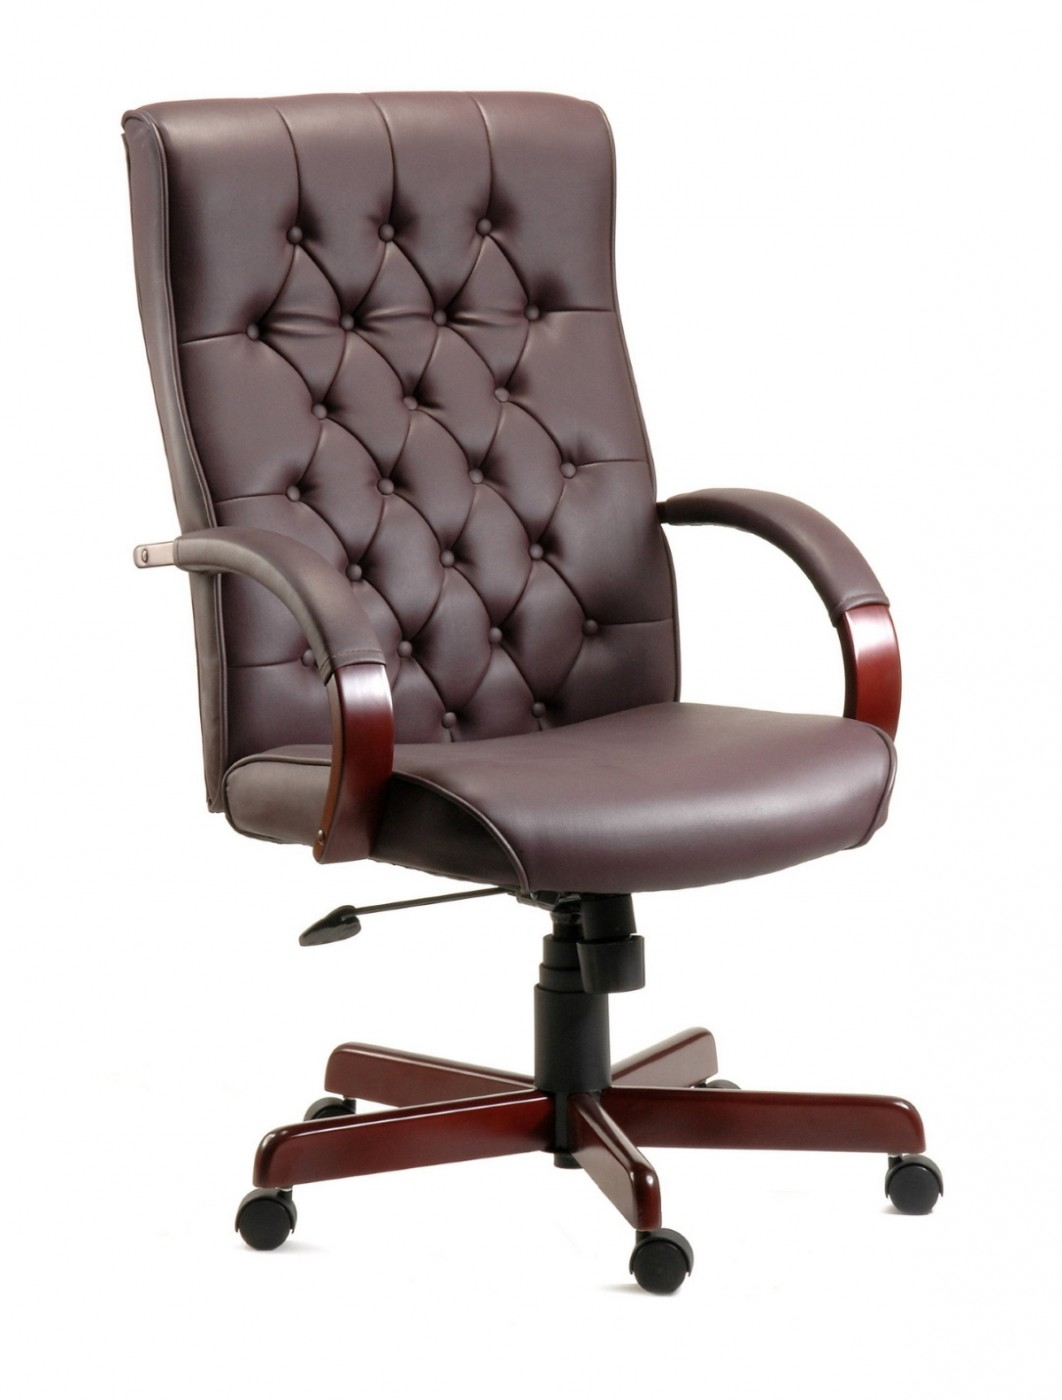 fabric skookum imagination swivel small desk leather chairs chair office black most boardroom best computer